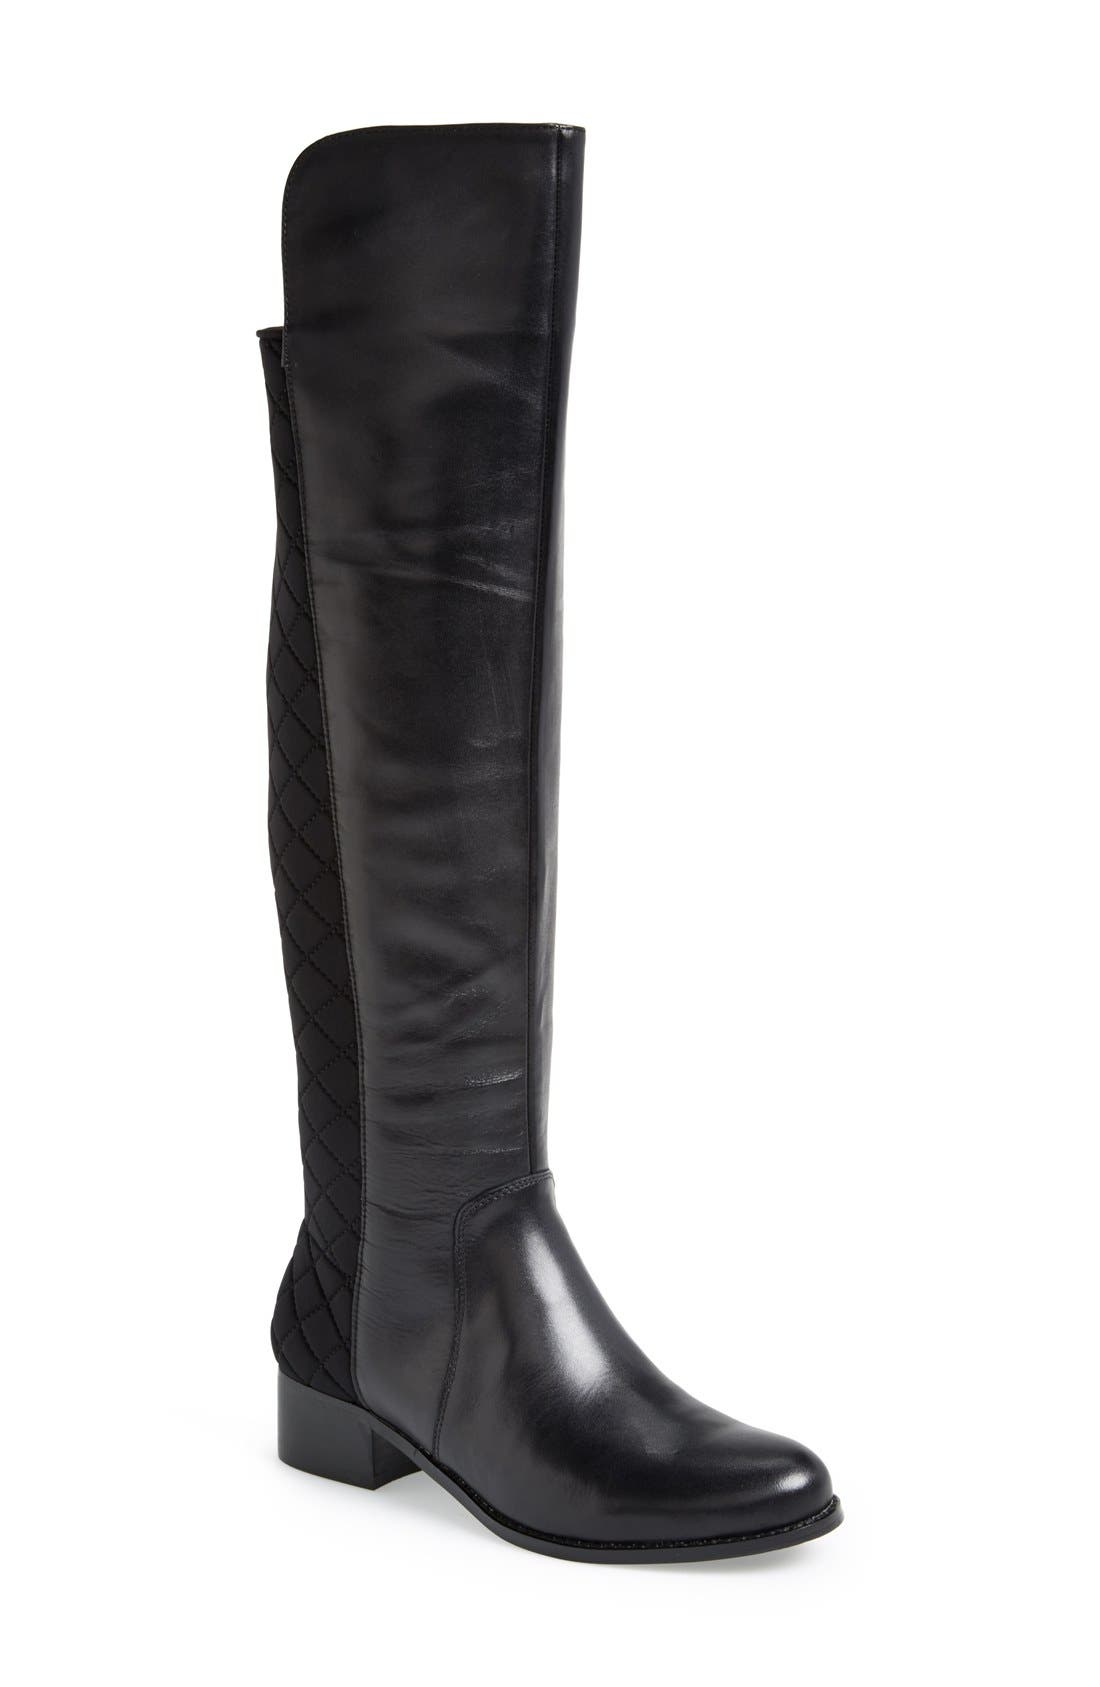 Main Image - Charles by Charles David 'Jace' Over The Knee Boot (Women)